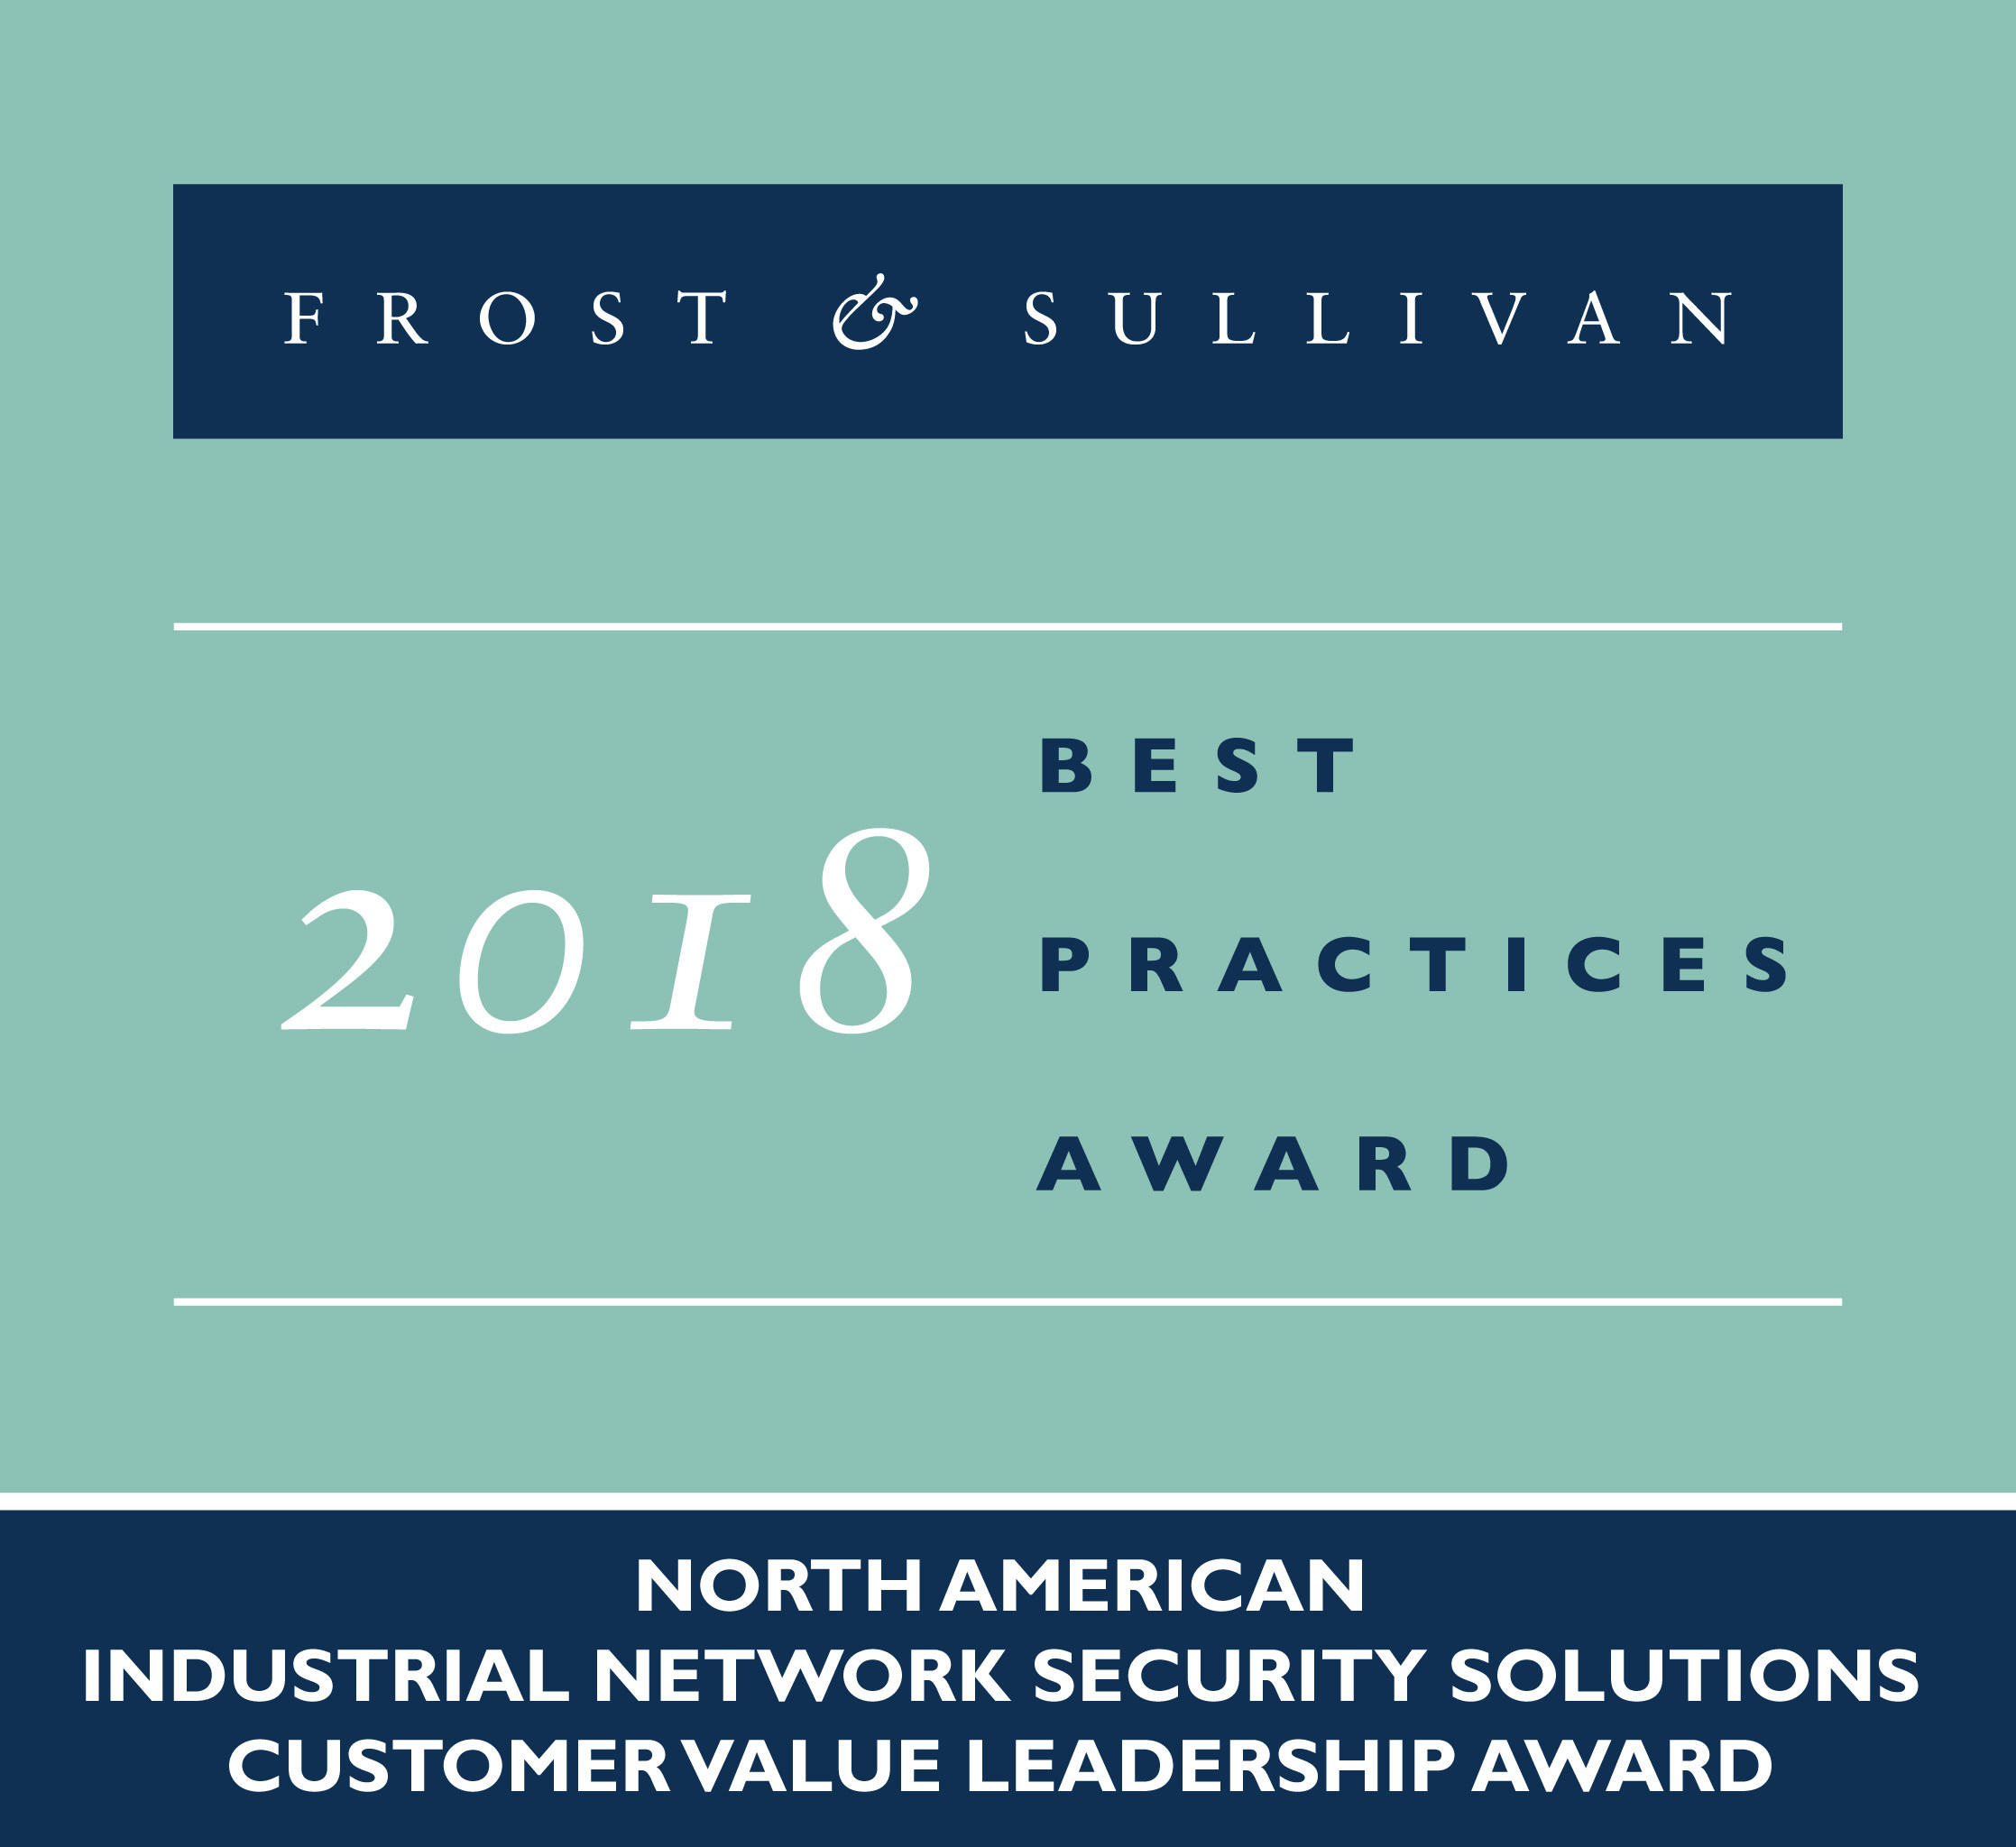 2018 North American Industrial Network Security Solutions Customer Value Leadership Award